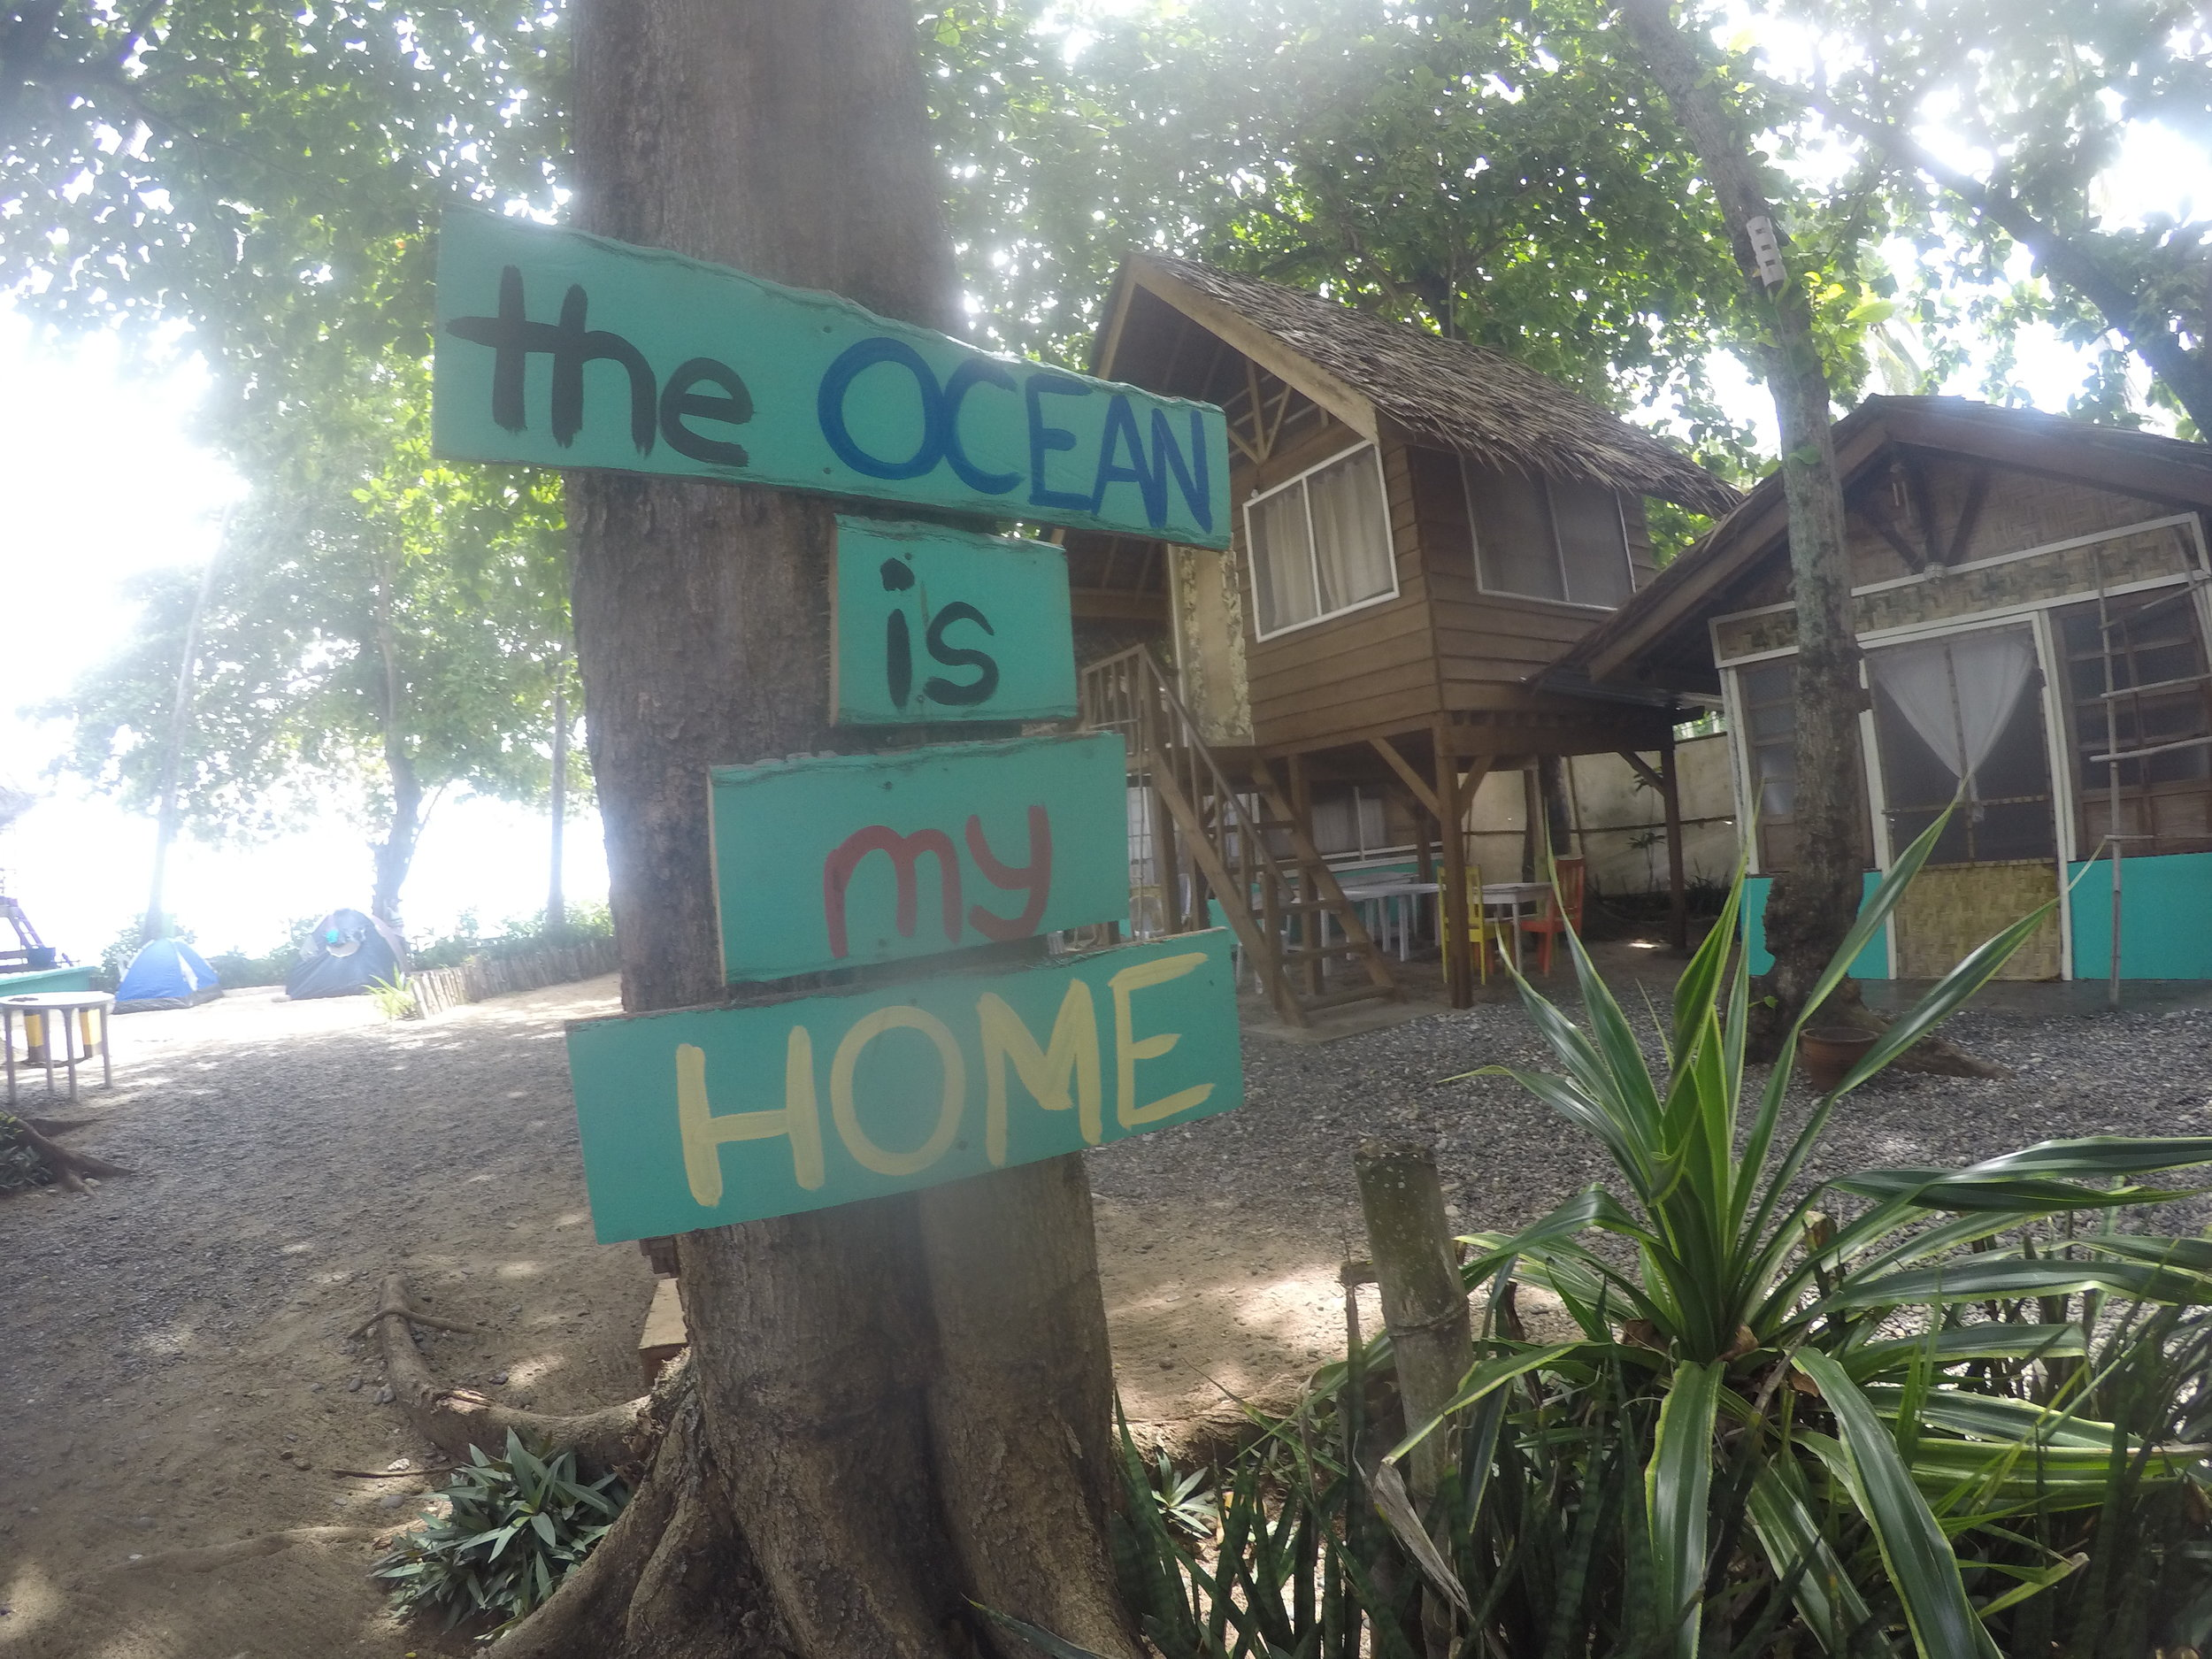 Almost every tree in DSR has a catchy phrase that echoes all our love for the ocean.